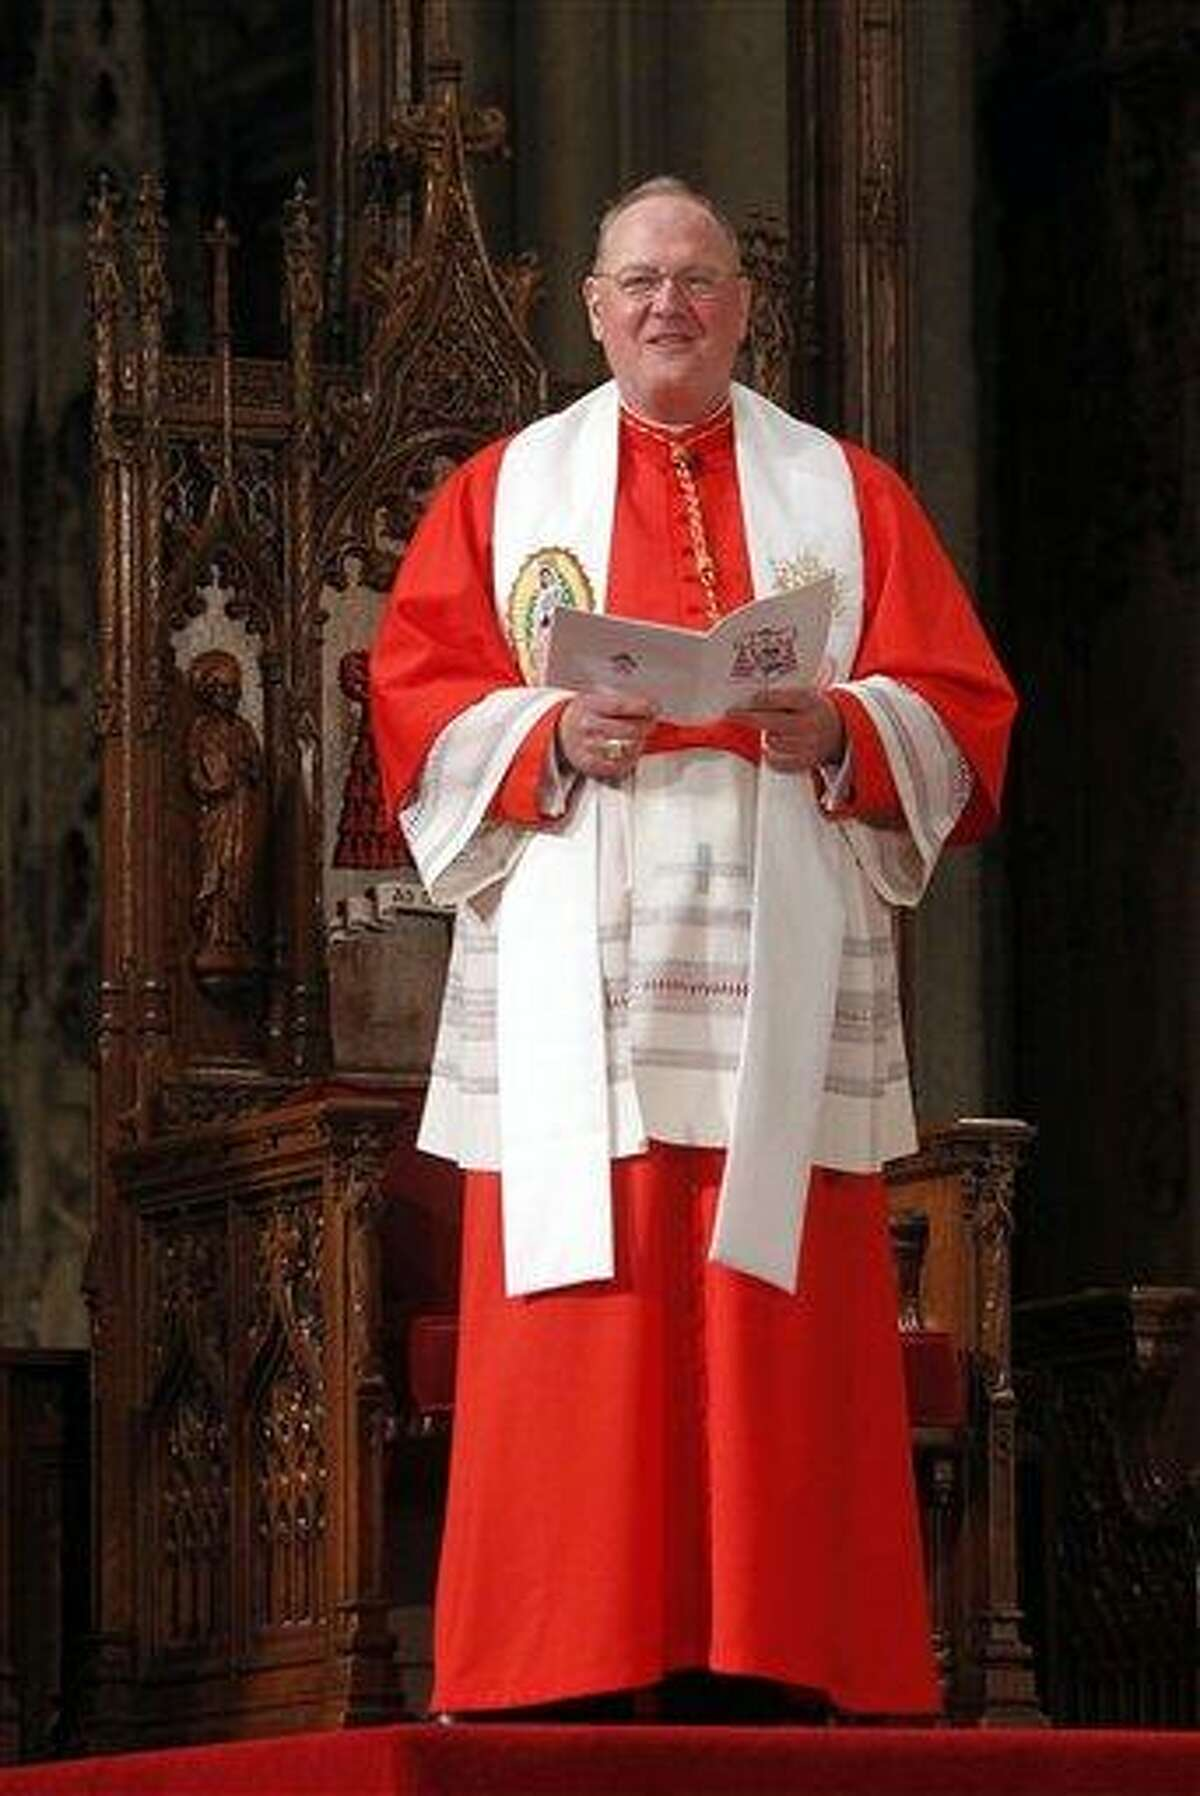 Cardinal Timothy Dolan leads a morning prayer service at St. Patrick's Cathedral Saturday in New York City. Associated Press